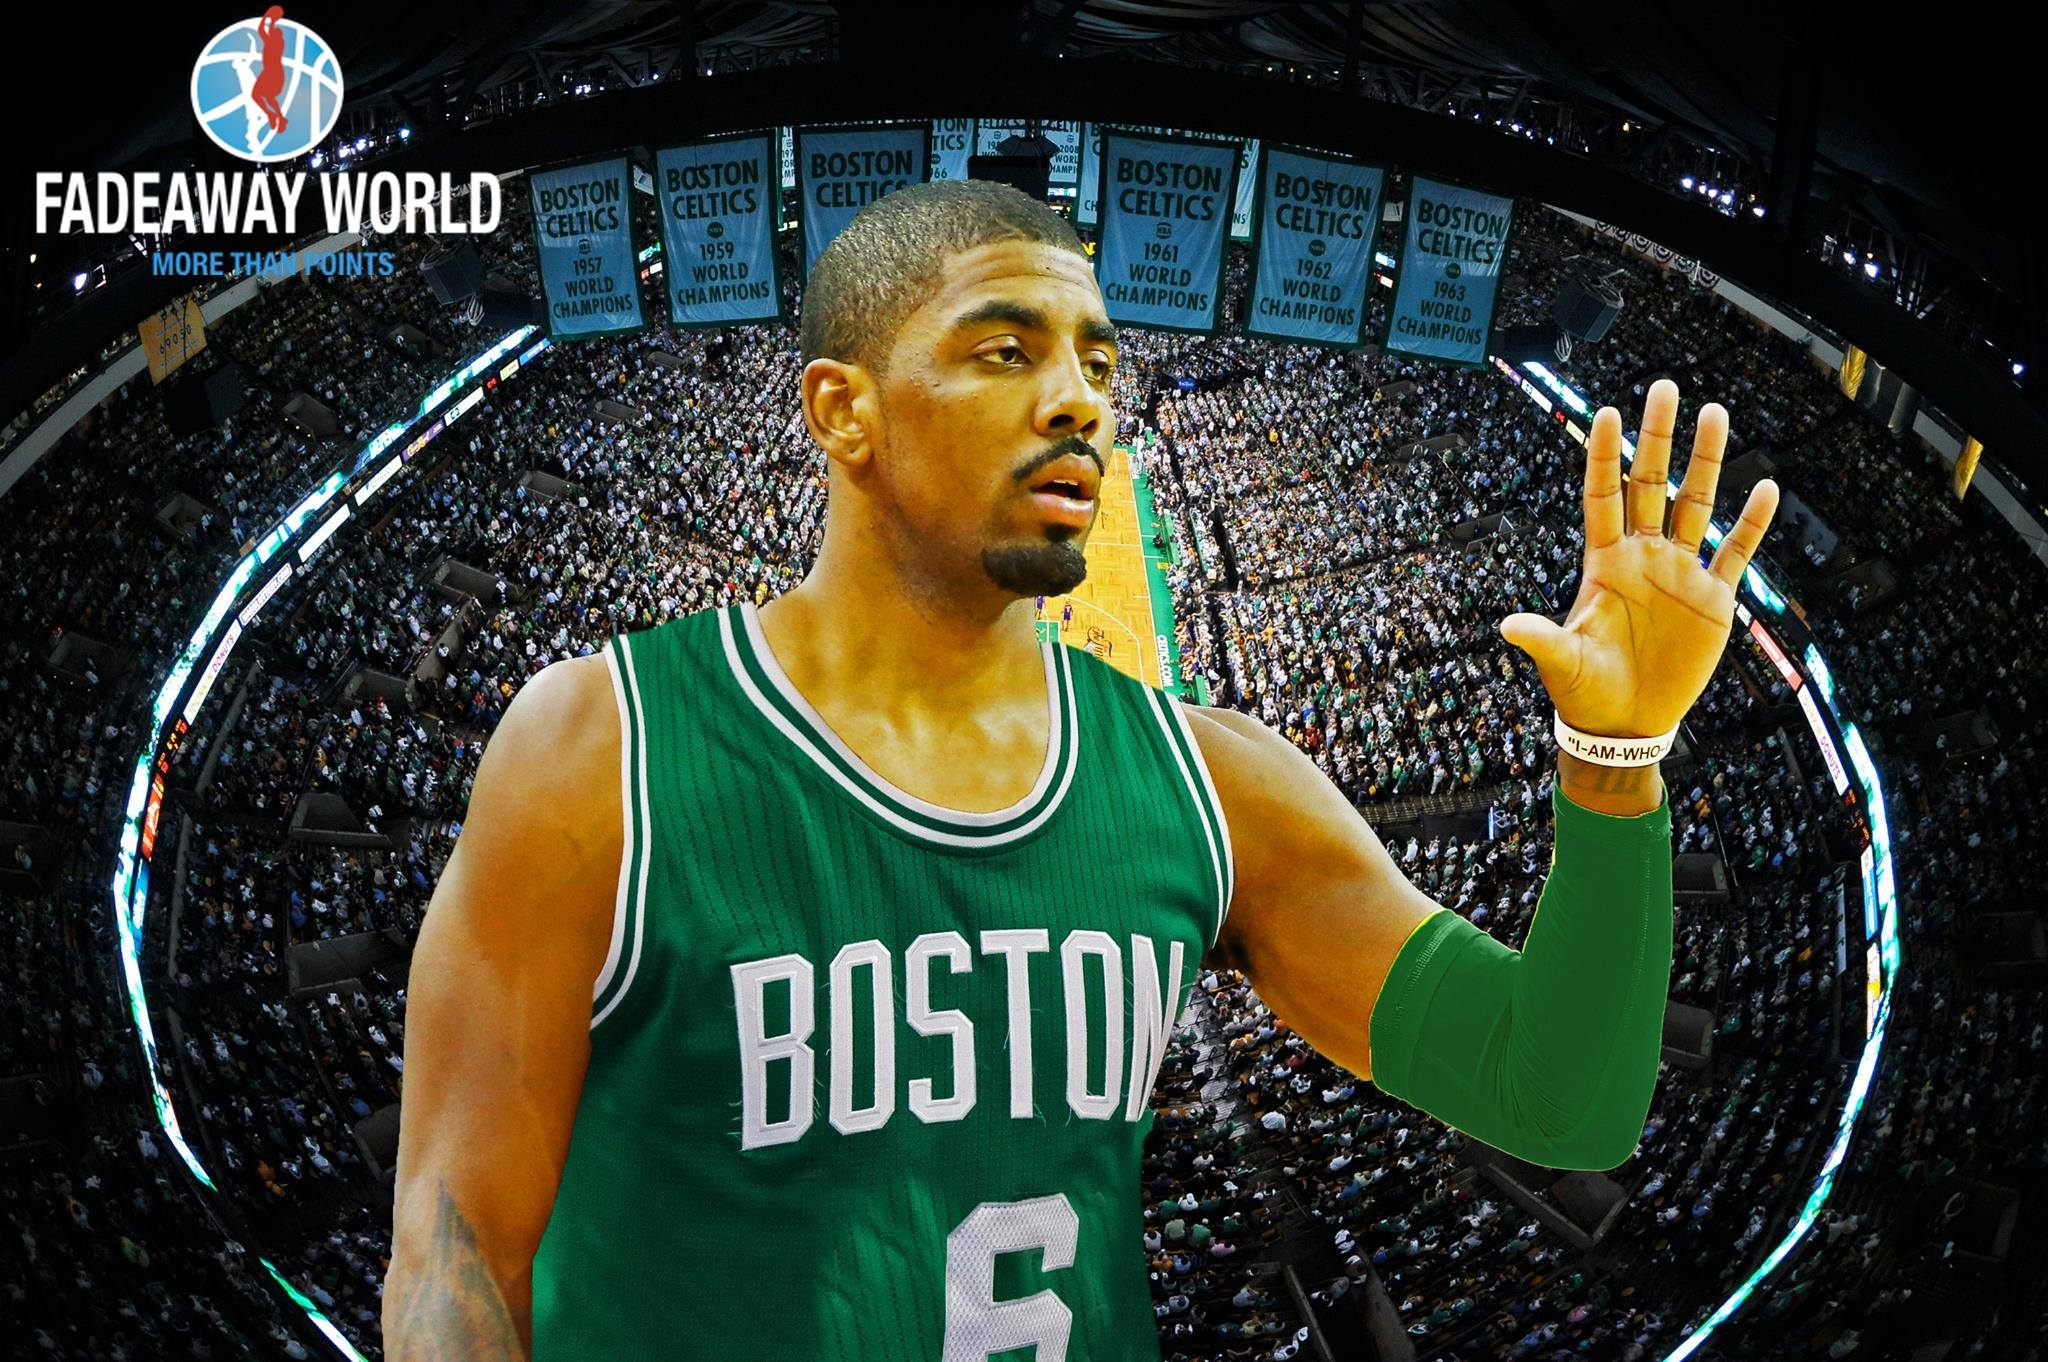 Cartoon Kyrie Irving Wallpapers Boston Celtics: Kyrie Irving Boston Celtics Wallpapers